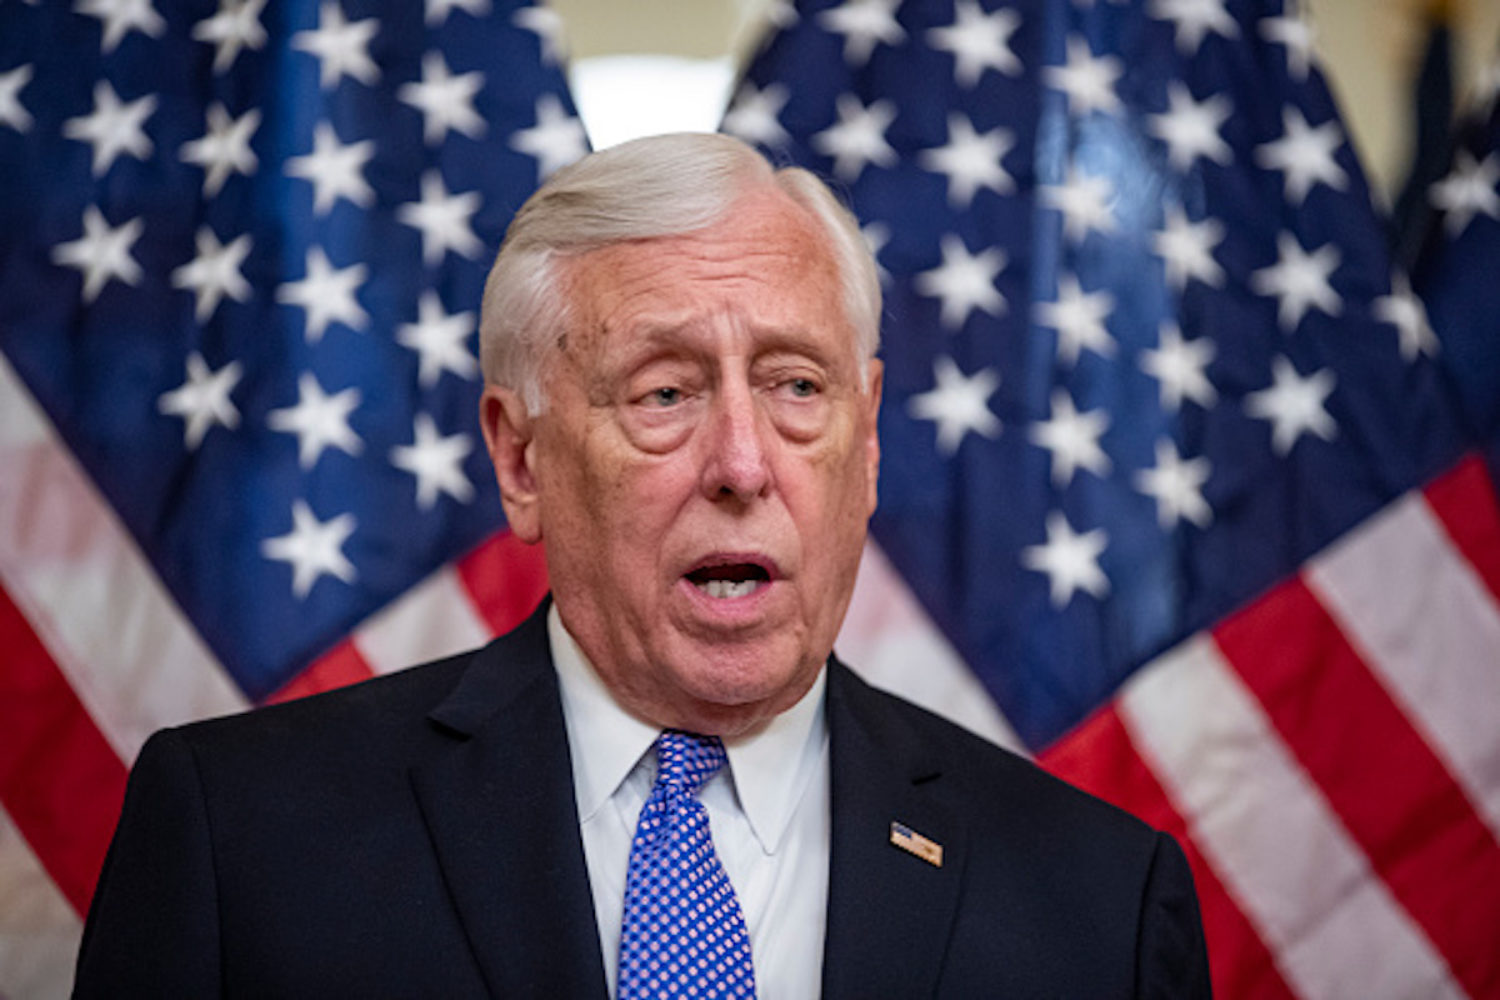 WASHINGTON, DC - APRIL 09: House Majority Leader Steny Hoyer, (D-MD) speaks during a bill enrollment ceremony for legislation ending U.S. involvement in the war in Yemen on April 9, 2019 in Washington, DC. President Donald Trump has said that he would veto the legislation if passed. (Photo by Alex Edelman/Getty Images)